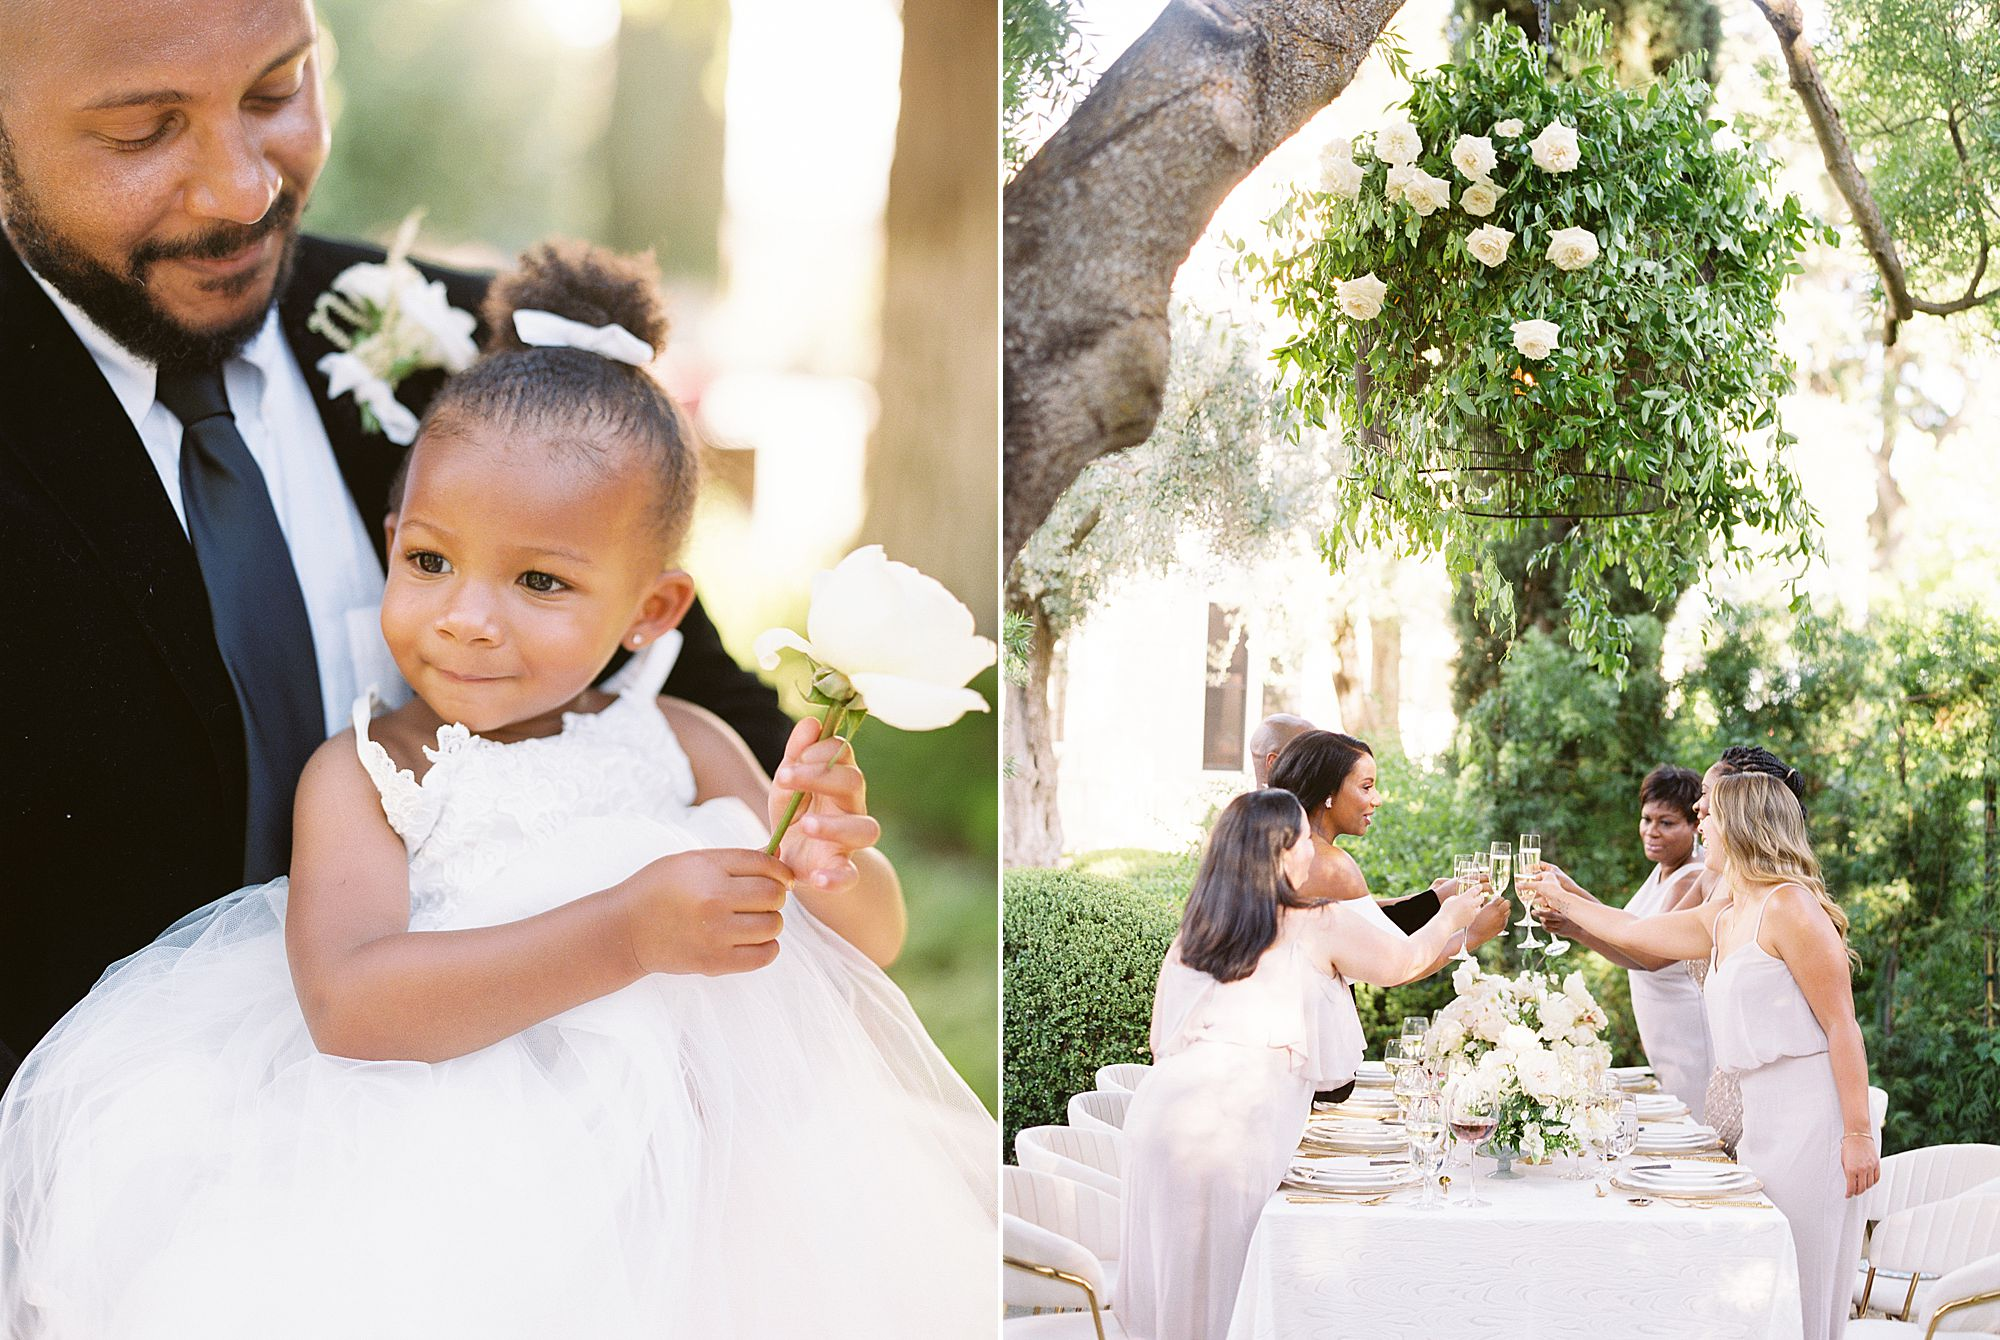 Park Winters Micro-Wedding Inspiration on Style Me Pretty - Stephanie Teague Events - Ashley Baumgartner - Park Winters Wedding - Black Tie Wedding - Micro-Wedding Sacramento Photographer_0065.jpg